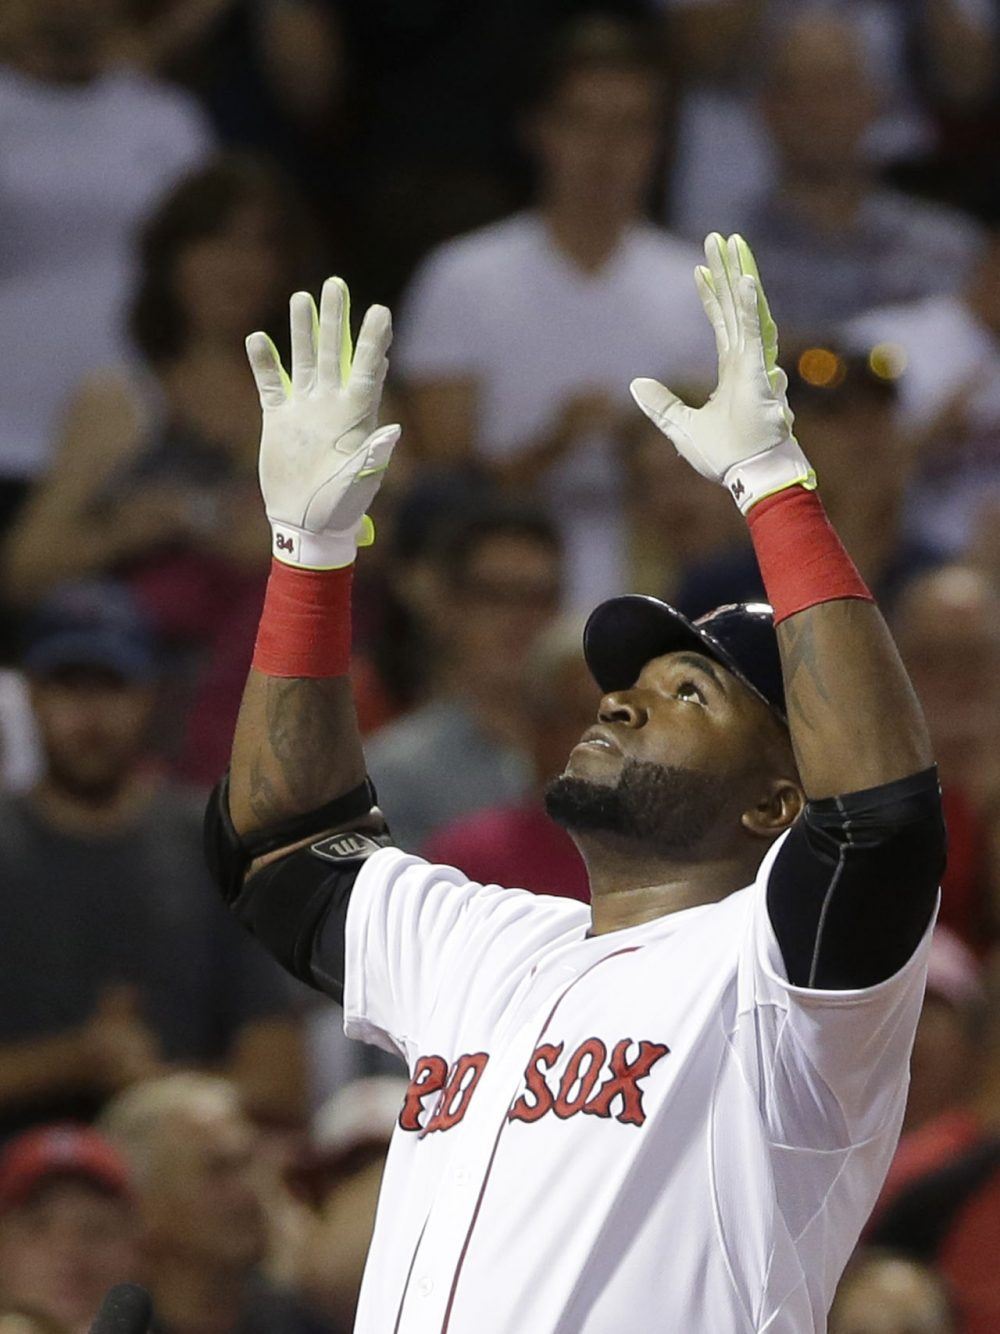 David Ortiz celebrates a three-run home run as he arrives at home plate in the seventh inning of a game against the Tigers at Fenway, Sunday, July 26, 2015. It was the second three-run home run of the evening for Ortiz. (Steven Senne/AP)